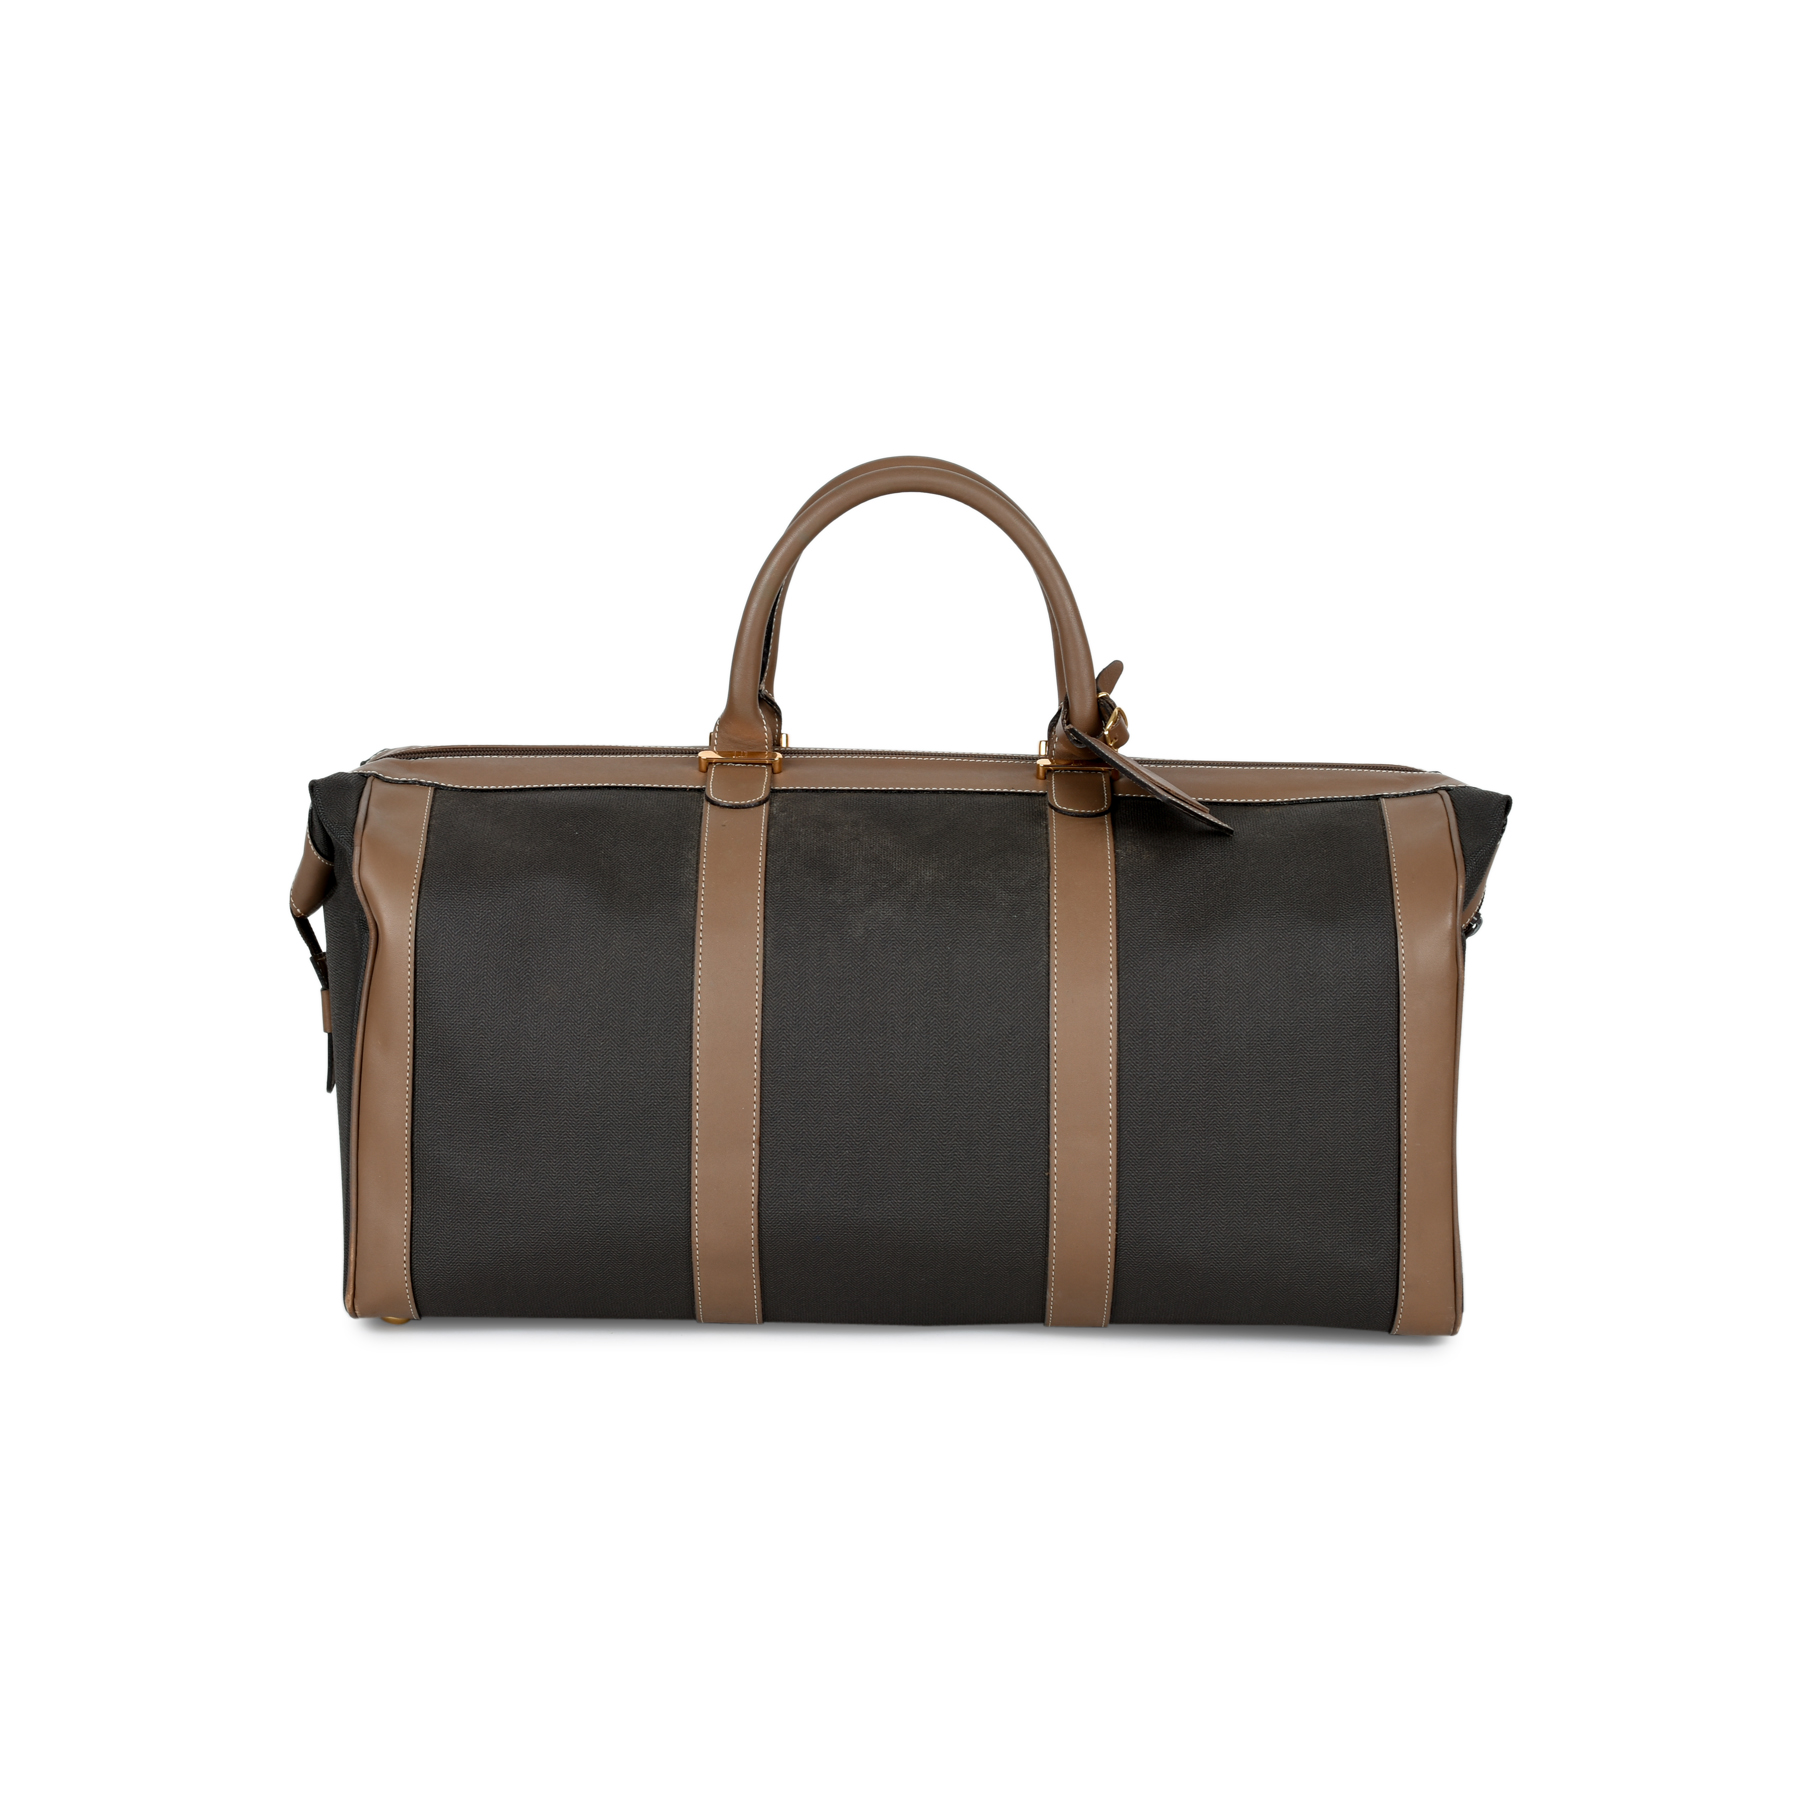 38eb6f4d68c Authentic Second Hand Dunhill Duffle Bag (PSS-430-00031) - THE FIFTH  COLLECTION